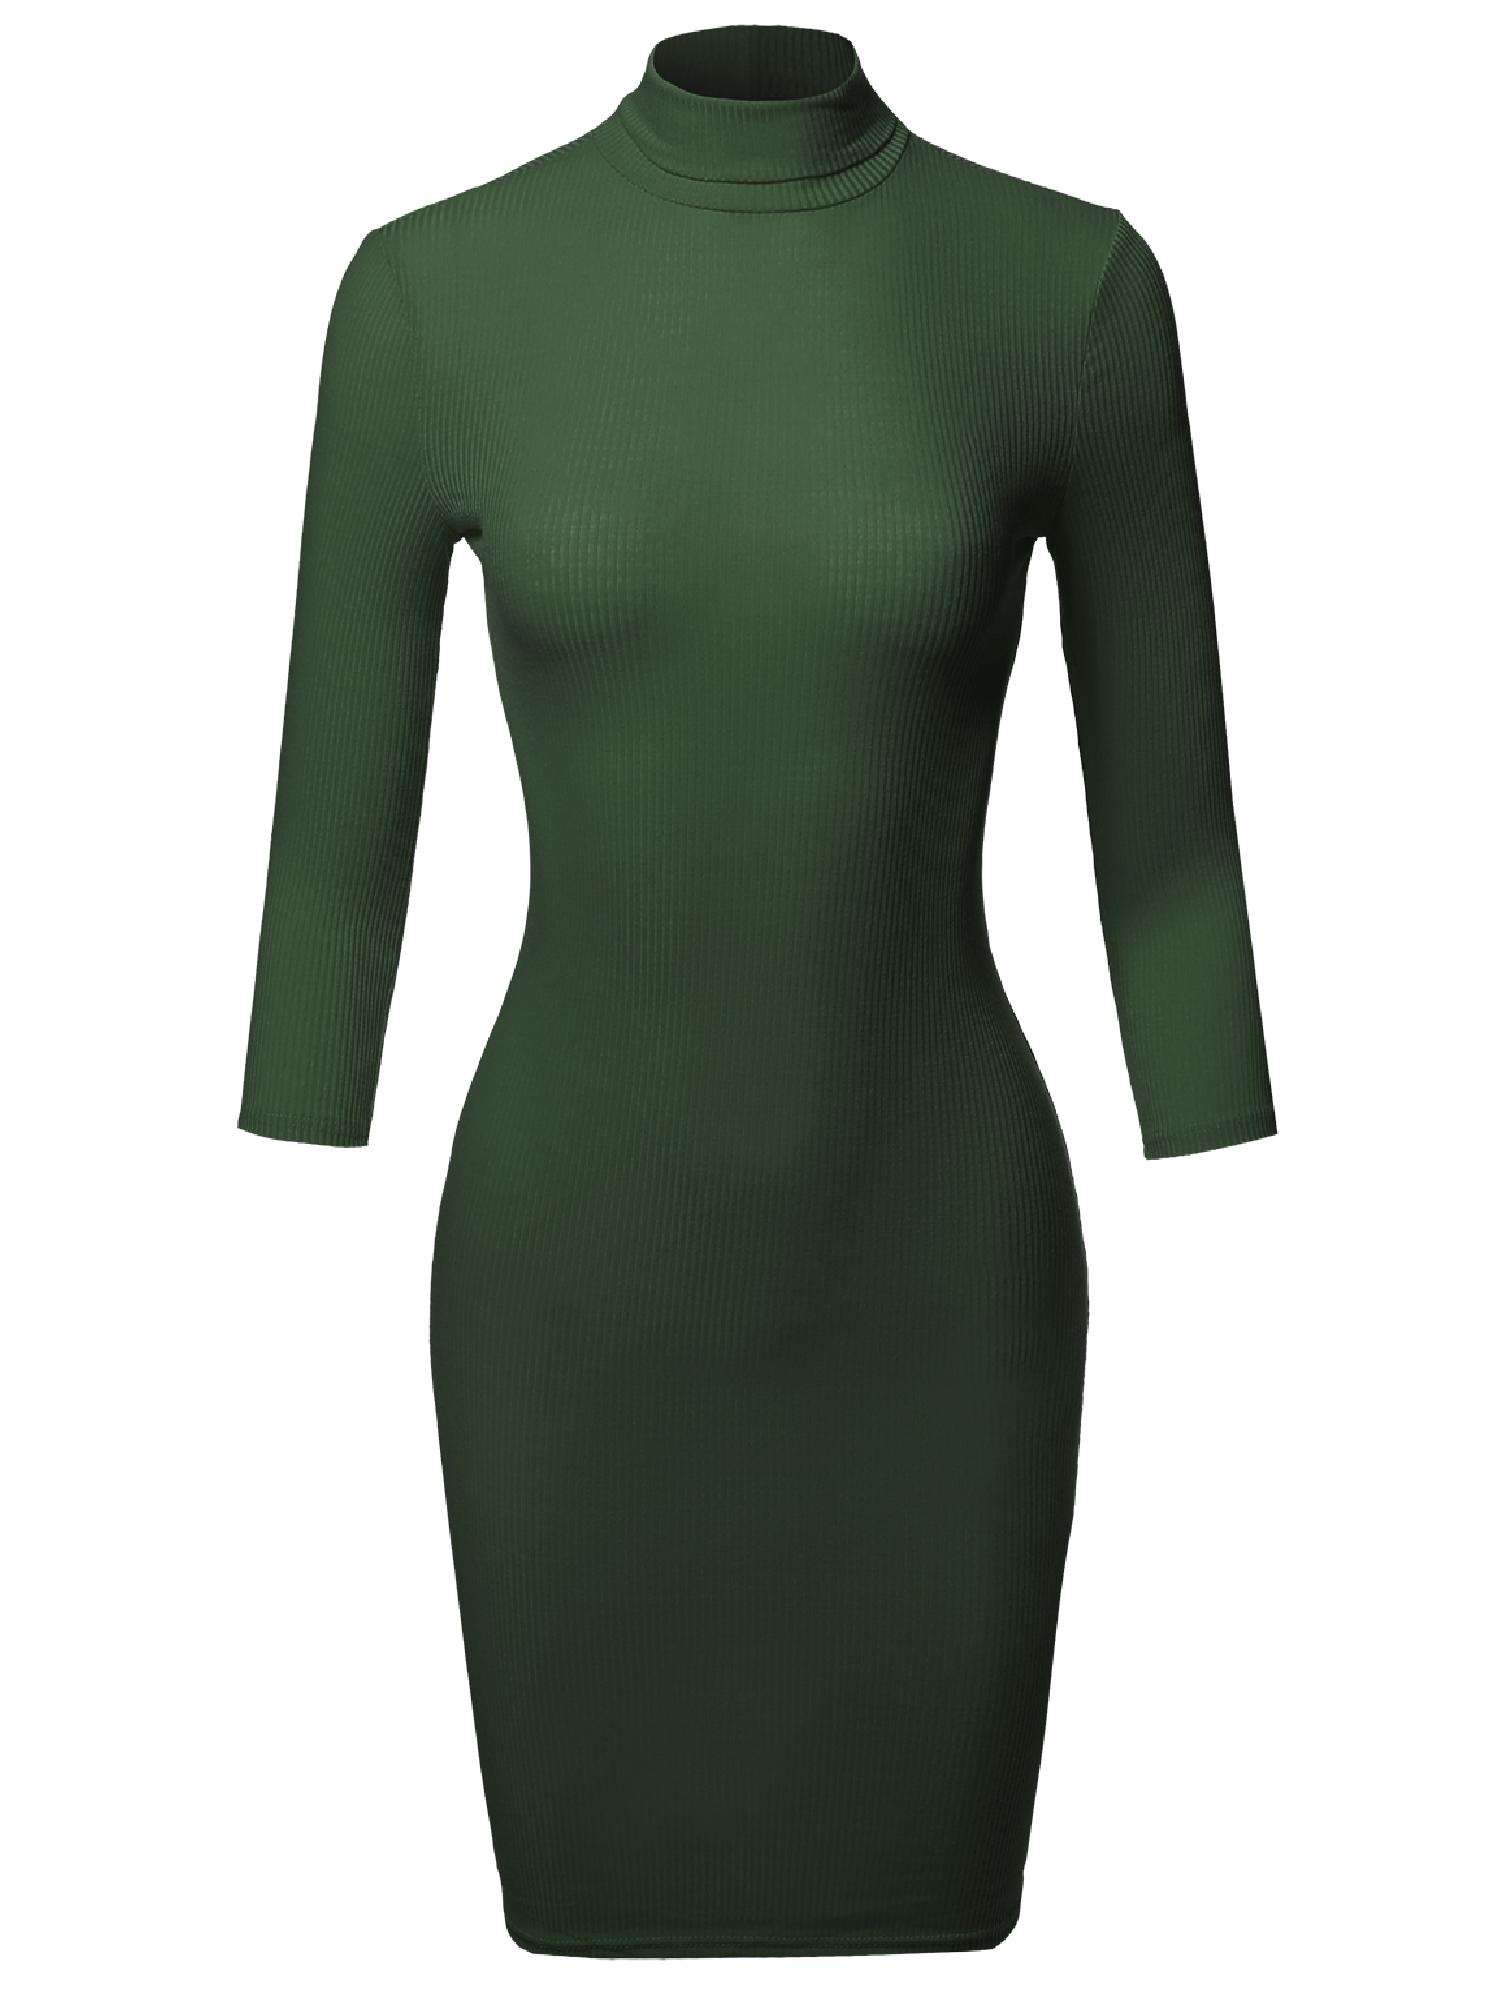 FashionOutfit Women's Casual 3 4 Sleeve Turtleneck Ribbed Mini Body-Con Dress by